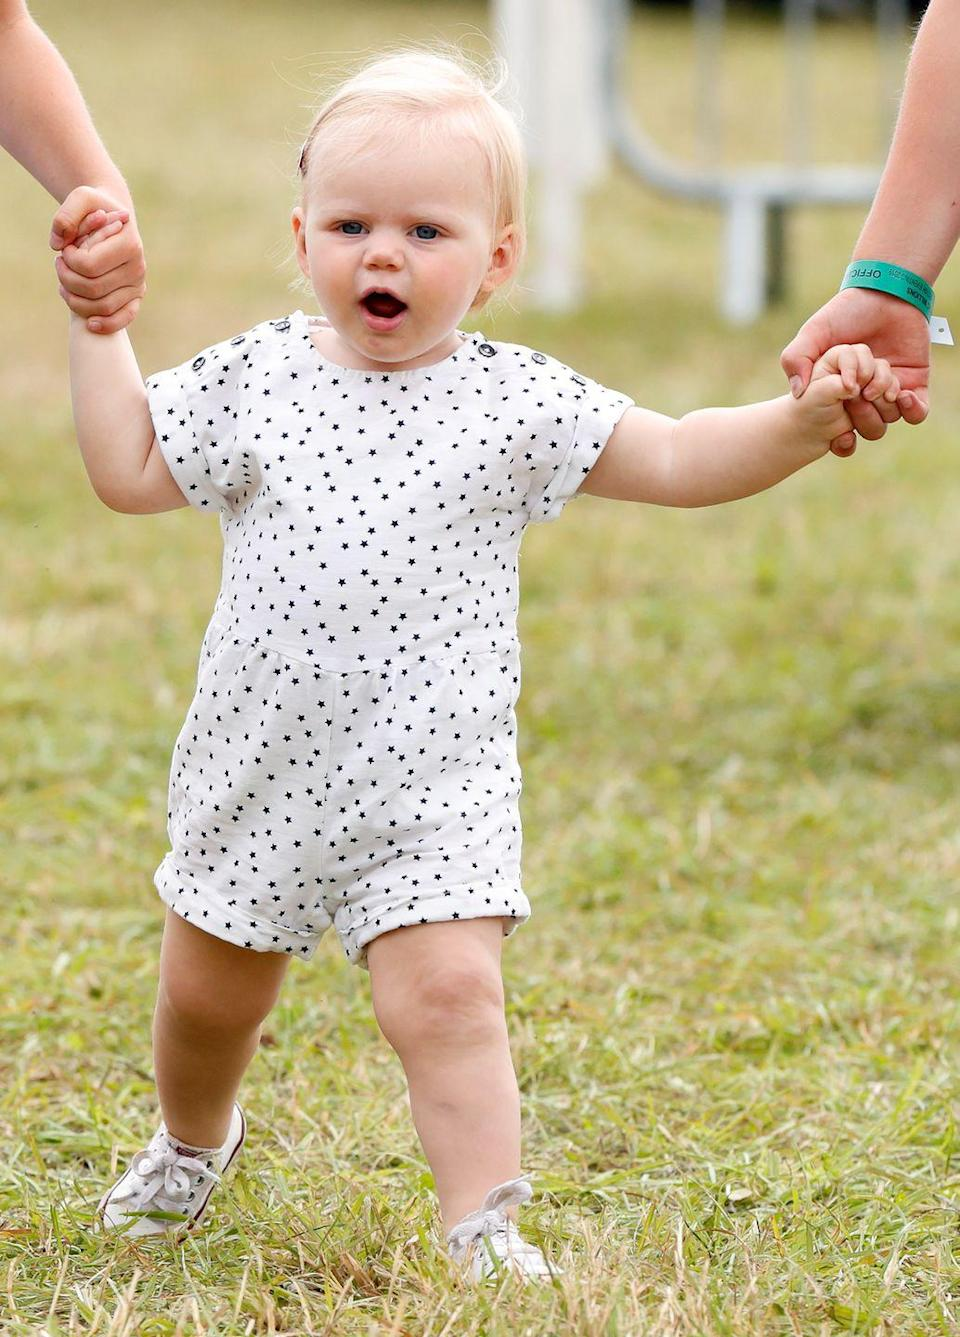 <p><strong>What's her full name? </strong>Lena Elizabeth Tindall.</p><p><strong>Who's she named after? </strong>Another Elizabeth! The Queen's name is clearly very popular. </p><p><strong>Her parents are: </strong>Zara (Princess Anne's daughter) and Mike Tindall.</p>